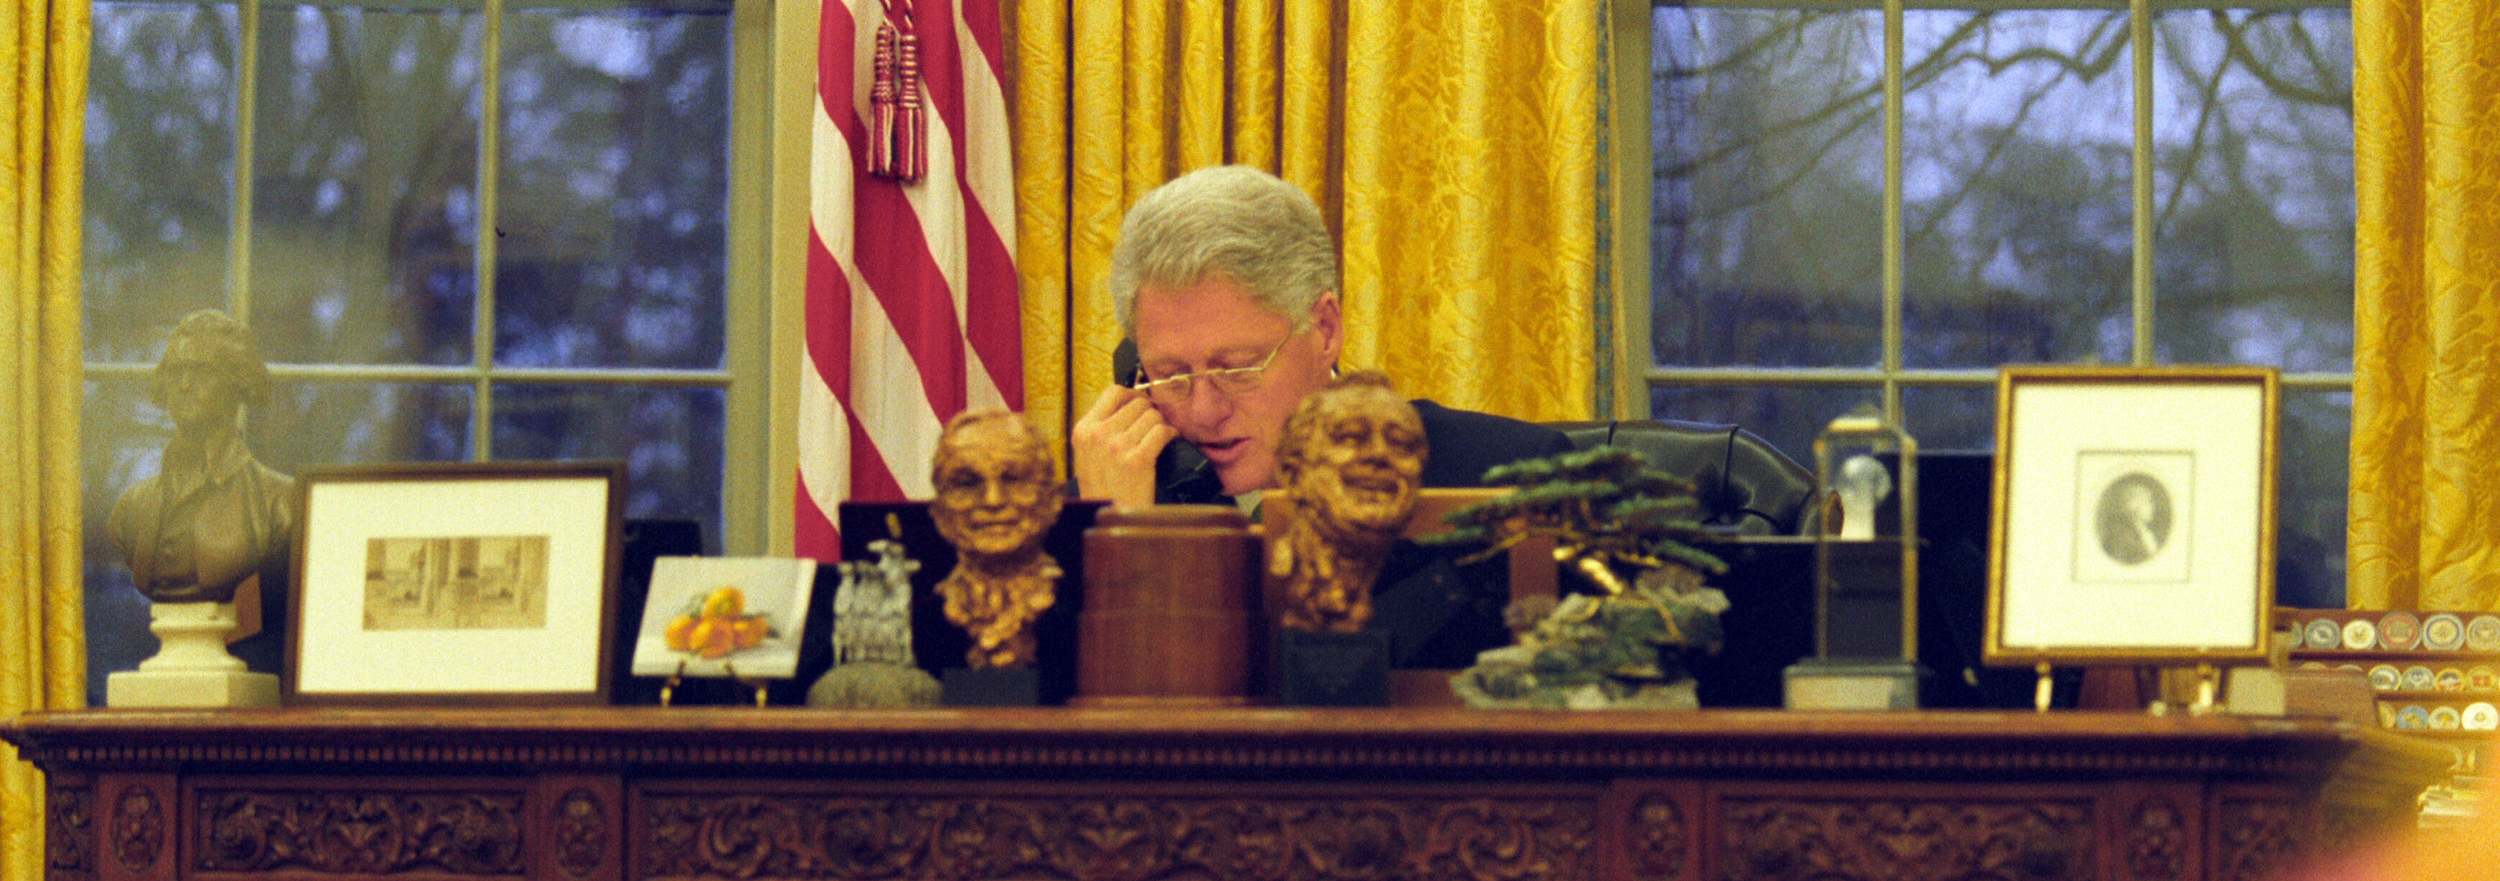 David Scull and White House Photograph Office, March 16, 2000.